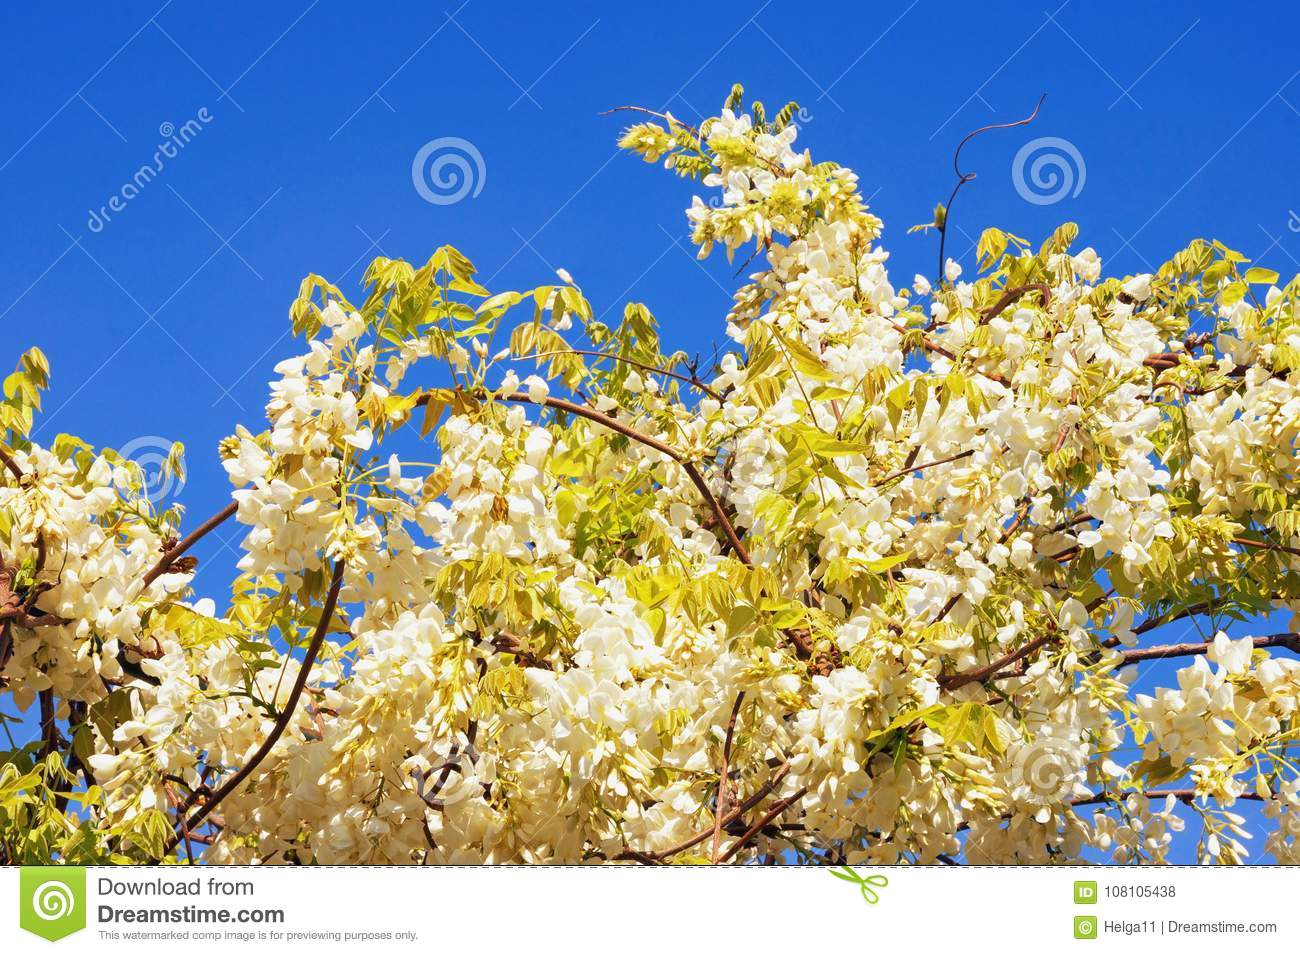 Spring flowers vine of blooming white wisteria against blue sky download spring flowers vine of blooming white wisteria against blue sky stock photo image mightylinksfo